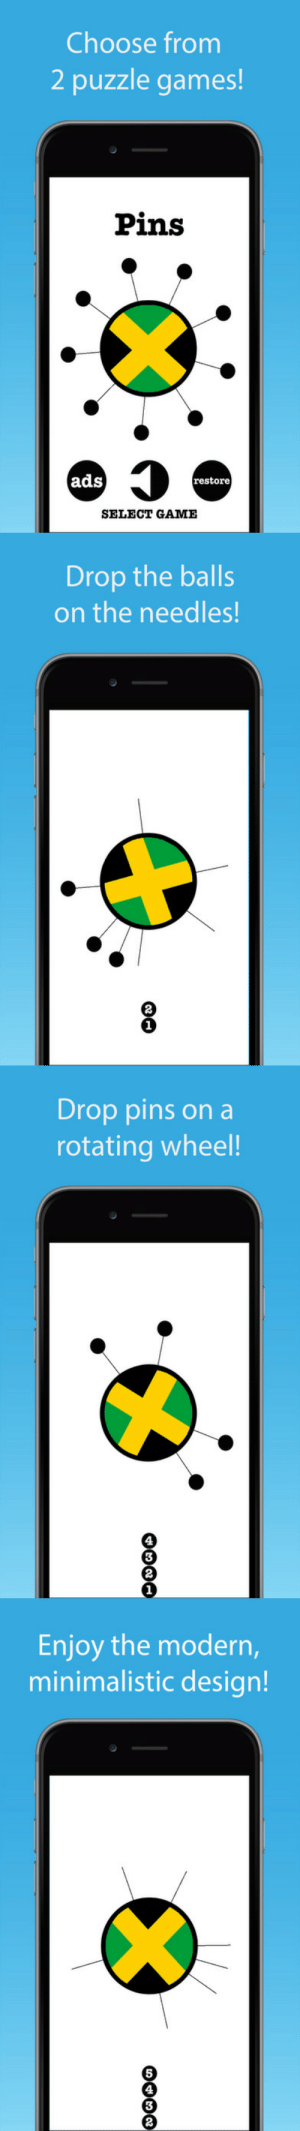 lol-coaster:    Pins  Needles - Fun Spinning Puzzle Game   Test your reflexes and logic skills in two fun puzzle games. Pins and Needles includes two separate spinning circle games! : Choose from  2 puzzle games!  Pins  1  ads  restore  SELECT GAME   Drop the balls  on the needles!  2   Drop pins on a  rotating wheel!  4  3  2   Enjoy the modern,  minimalistic design!  5  4  3  2 lol-coaster:    Pins  Needles - Fun Spinning Puzzle Game   Test your reflexes and logic skills in two fun puzzle games. Pins and Needles includes two separate spinning circle games!